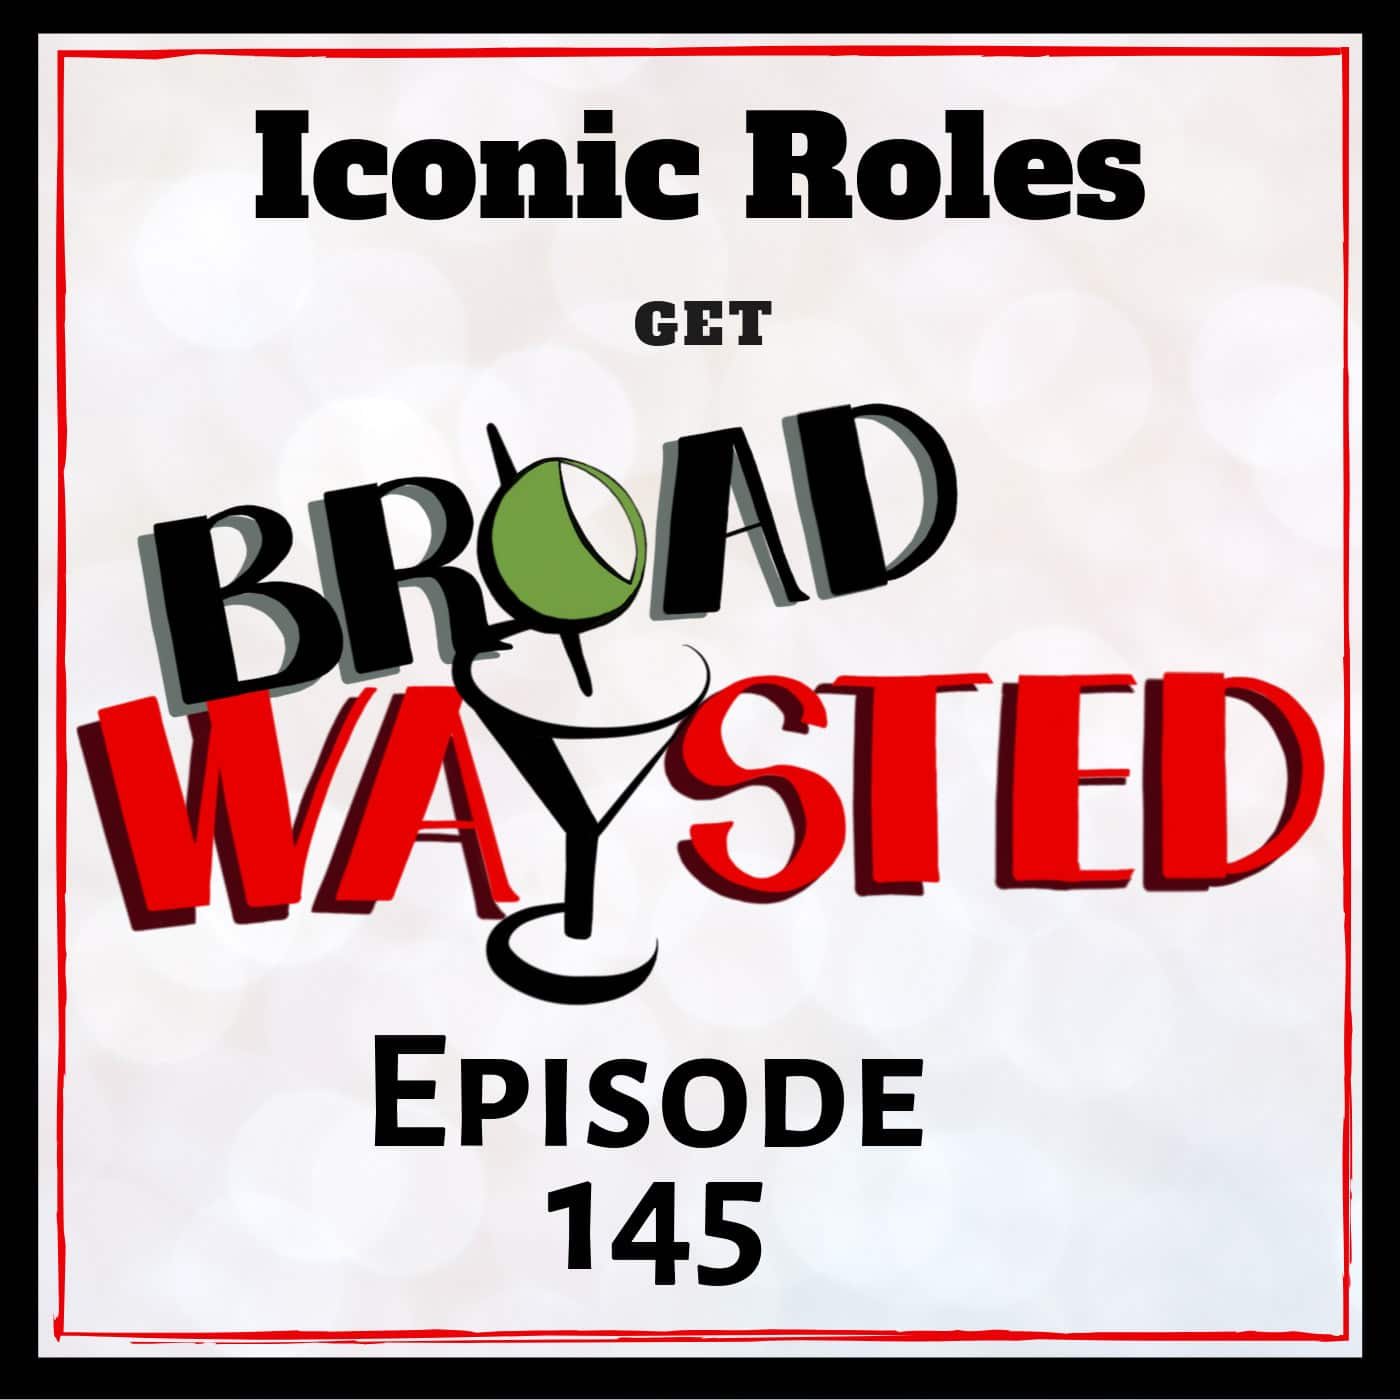 Broadwaysted Ep 145_ Iconic Roles